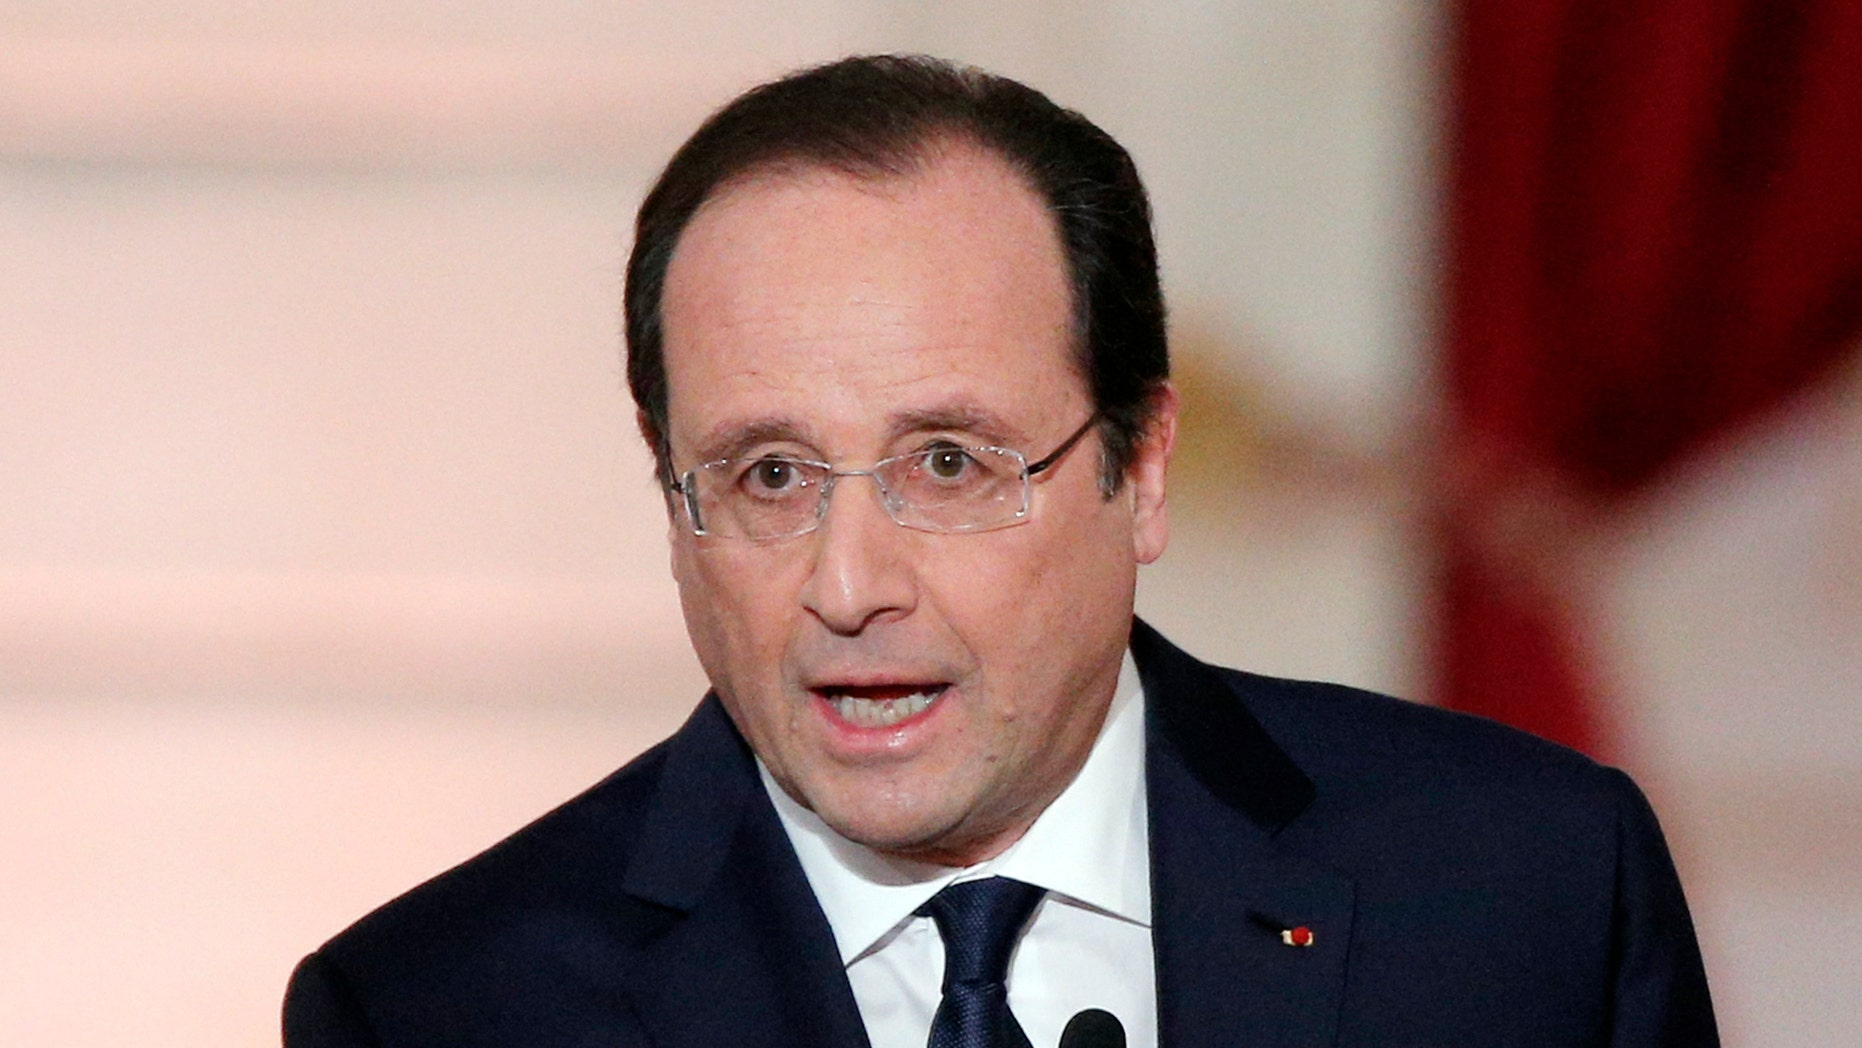 French President Francois Hollande delivers his speech at his  annual news conference, Tuesday, Jan.14, 2014 at the Elysee Palace in Paris. The French president's complex personal life — and what it means to be the first lady in modern society — may get a full airing as Hollande answers questions for the first time since a tabloid reported he was having an affair with an actress. (AP Photo/Christophe Ena)